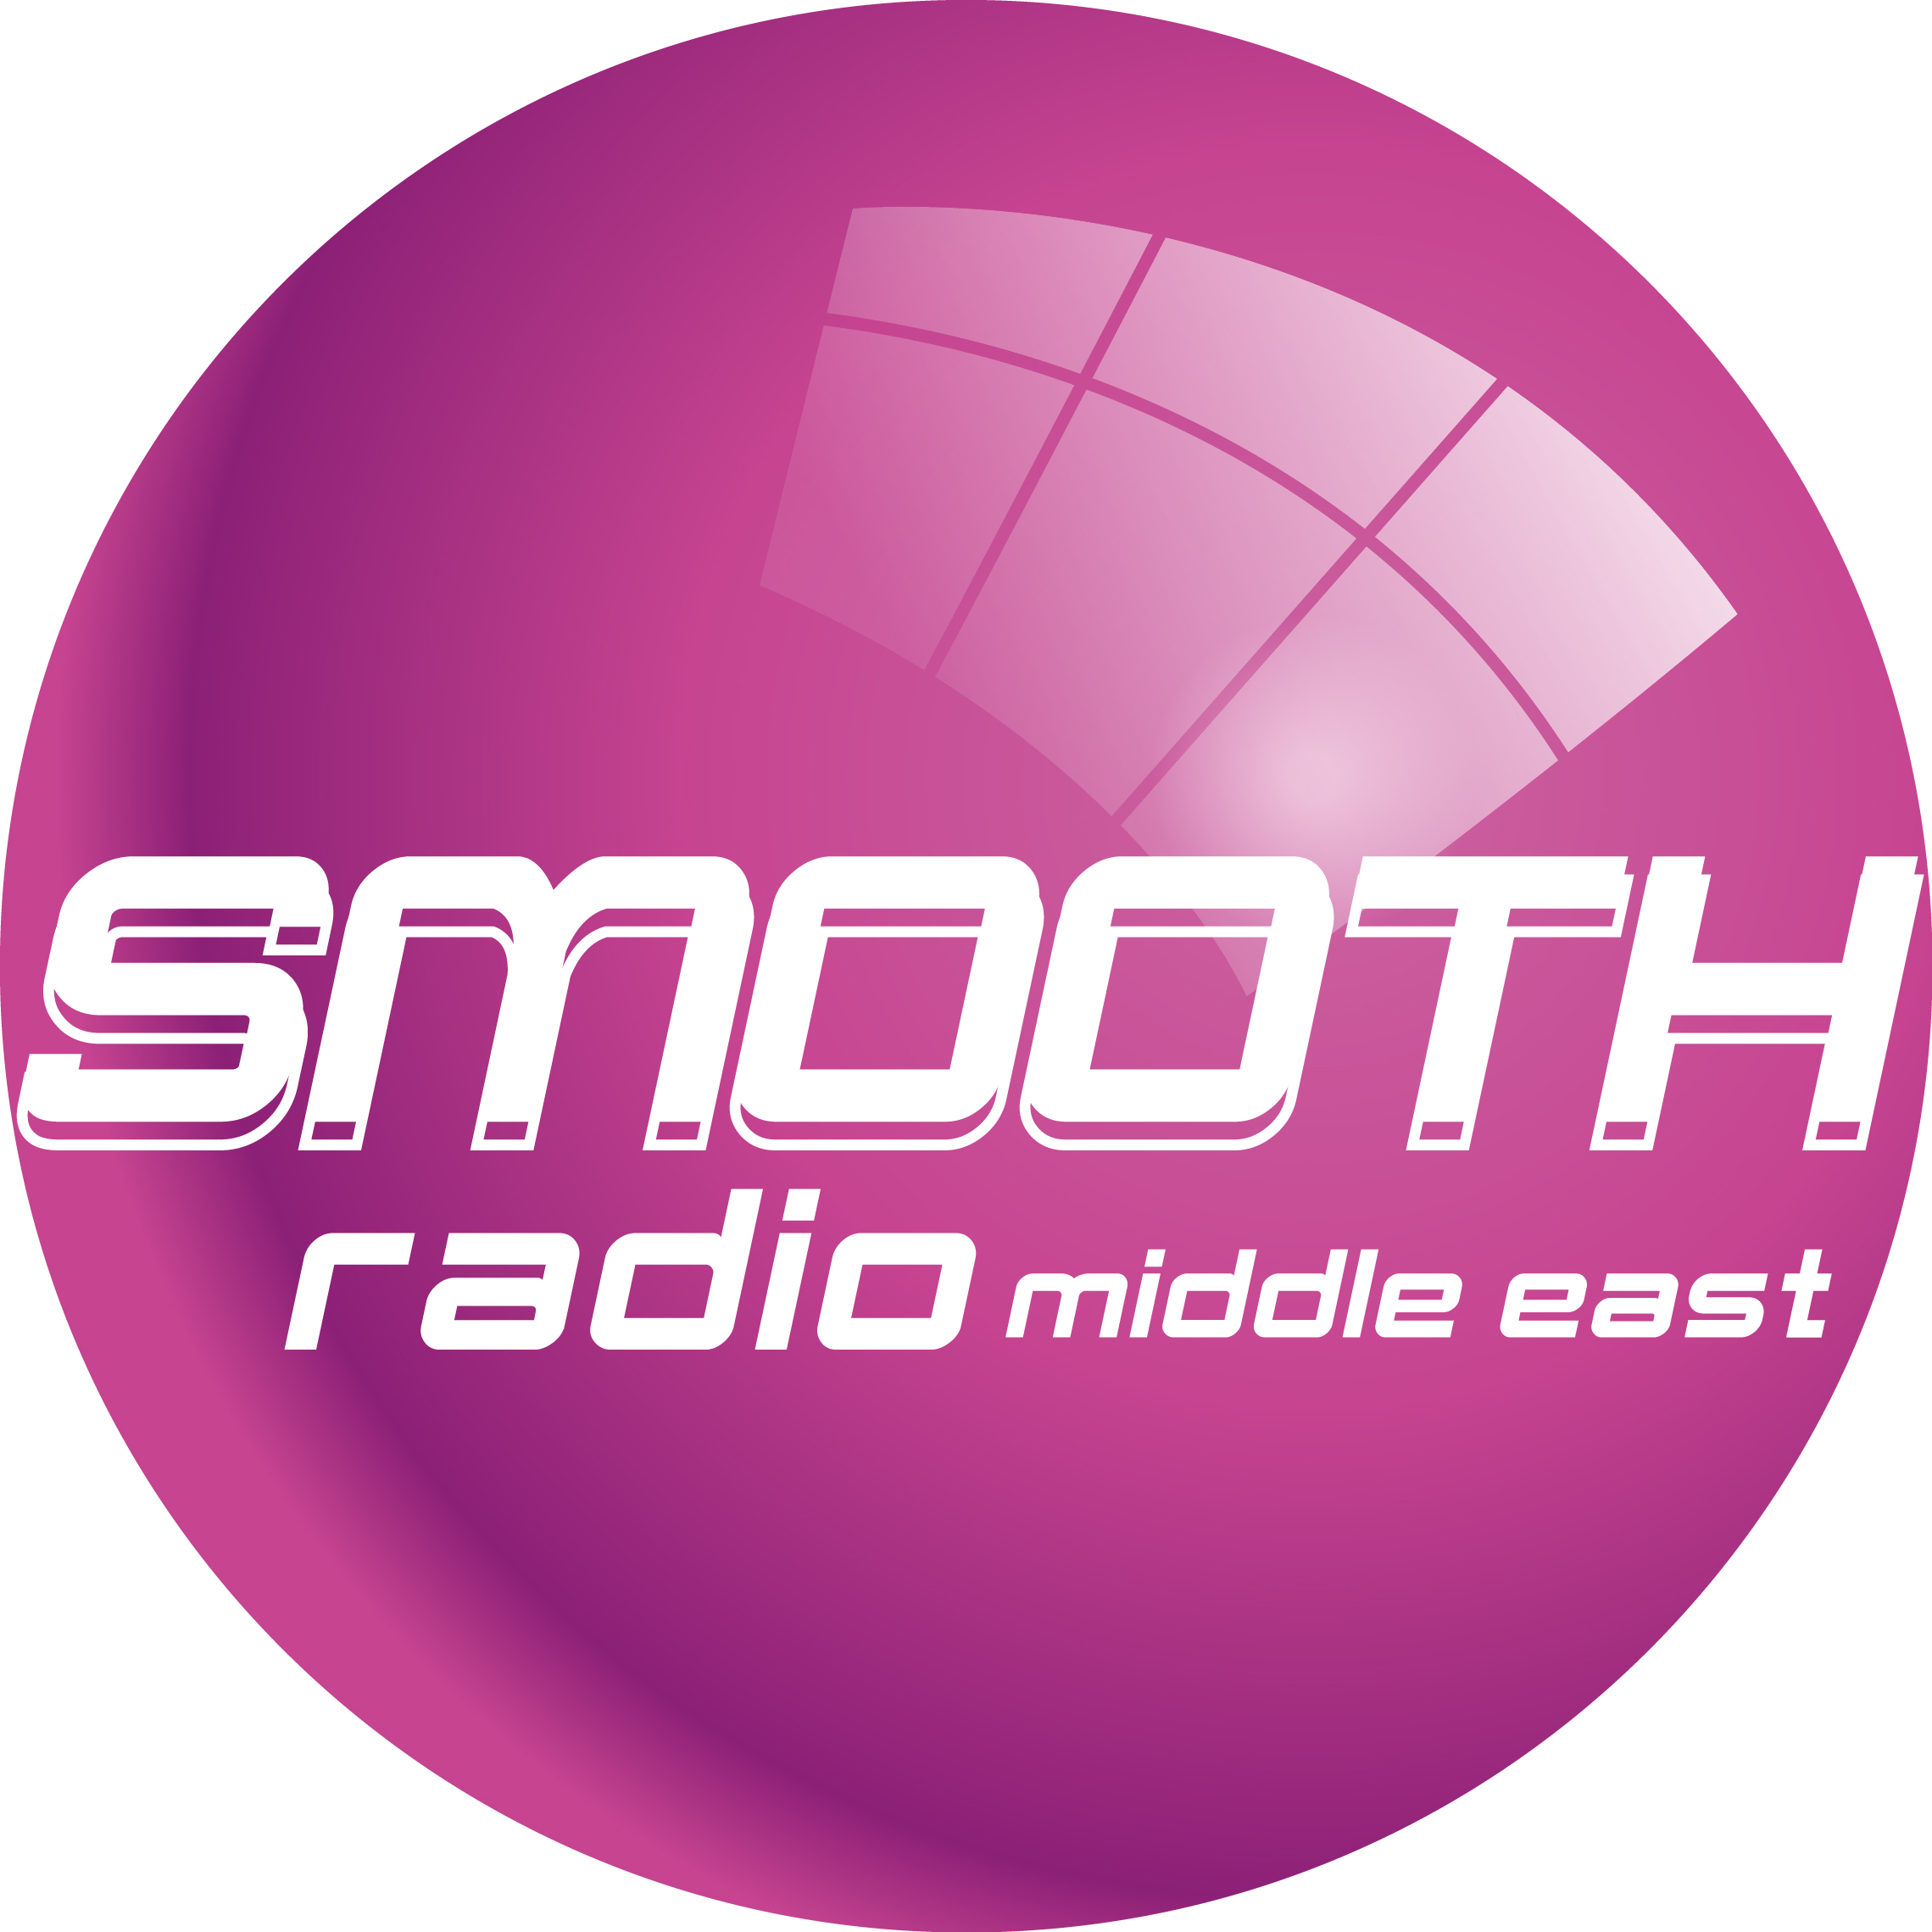 smooth fm radio dating Smooth radio is a network of adult contemporary local radio stations broadcasting on fm and mw stations in the united kingdomlaunched in march 2014, they replaced the national smooth radio that had launched in 2010.